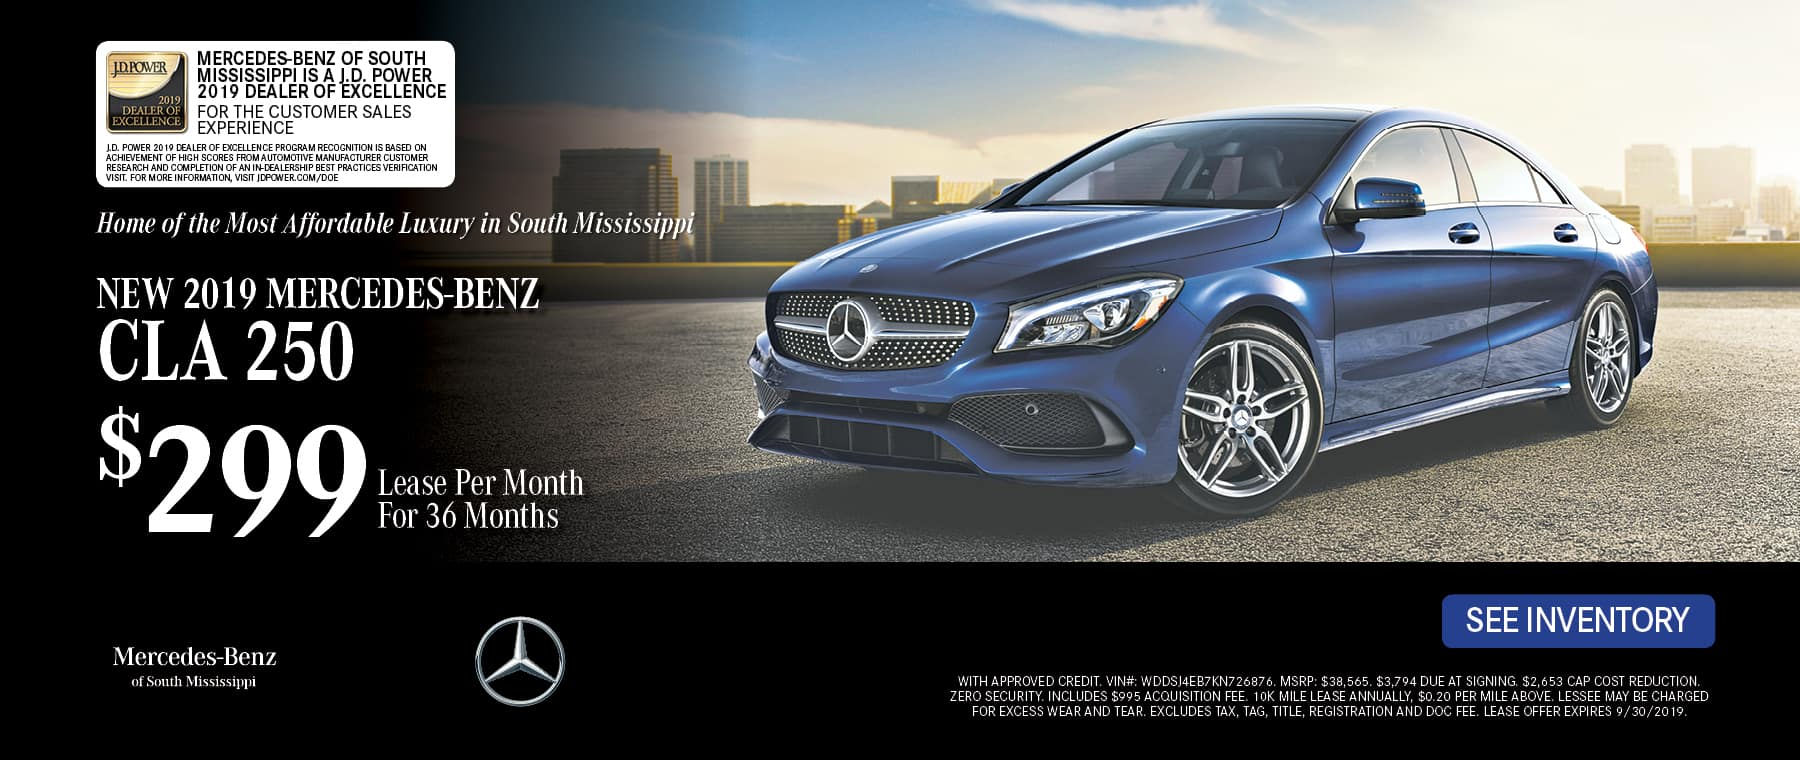 CLA250 SPECIAL